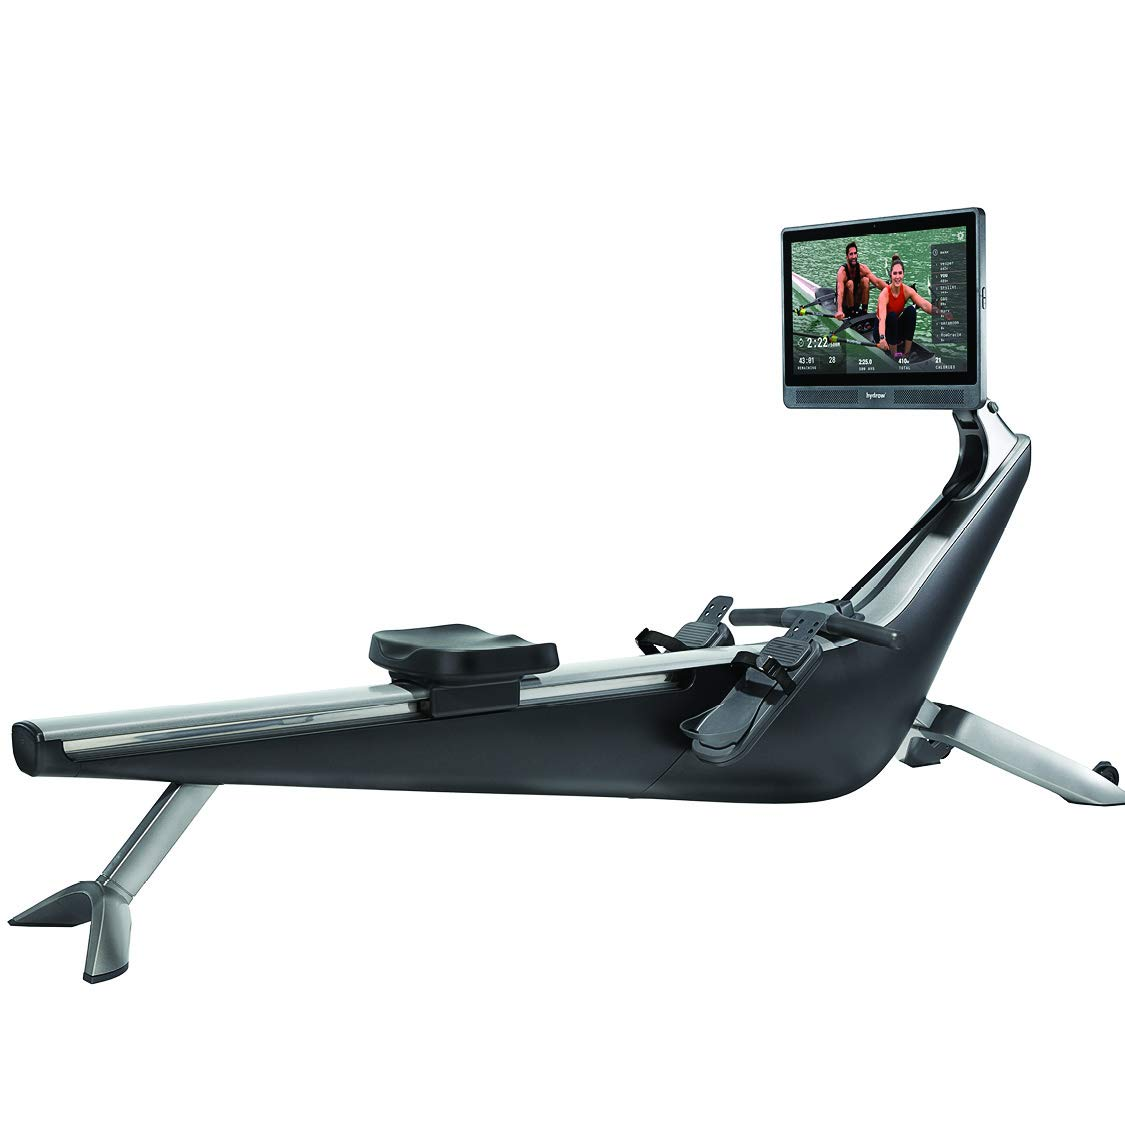 Hydrow Live Outdoor Reality At Home Connected Rowing Machine - Exercise Equipment - Full Body Workout - Live & On-Demand Classes - Subscription Required